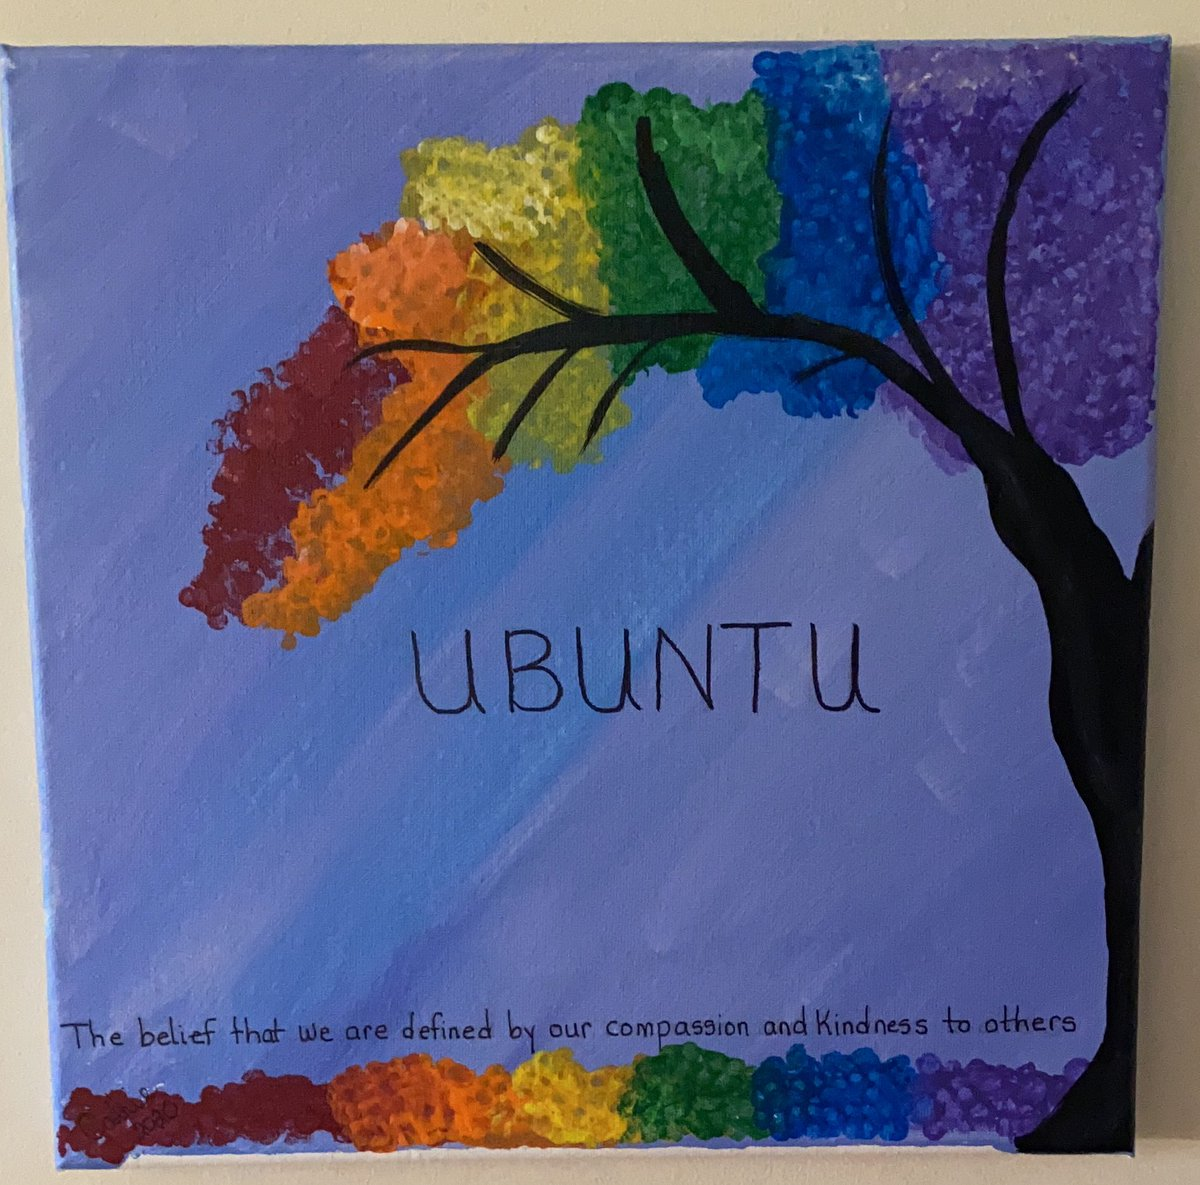 The belief that we are defined by our compassion and kindness to orhers. UBUNTU! <br>http://pic.twitter.com/55sHXm7mDV